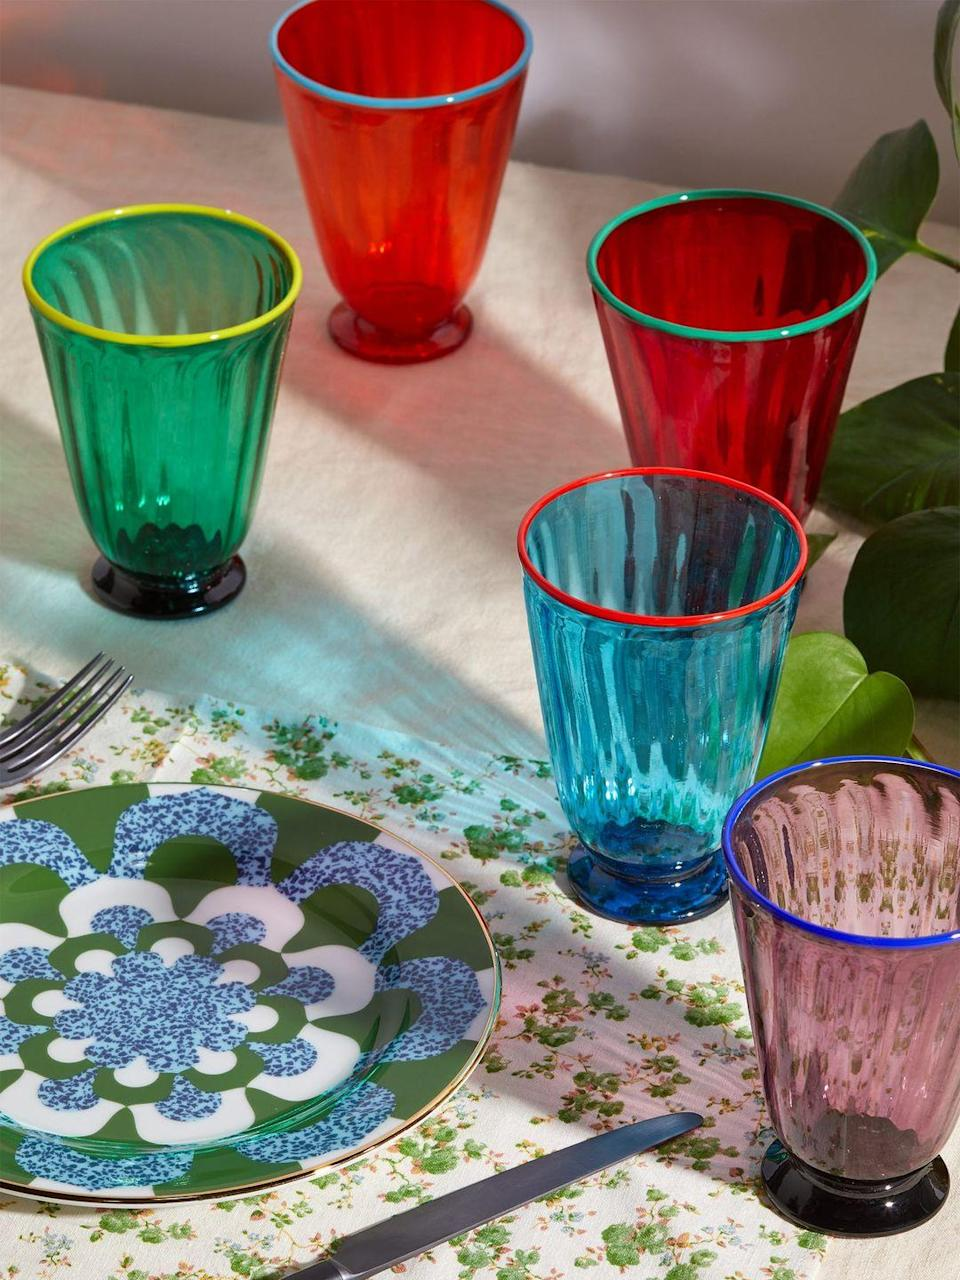 """<p>La Double J has teamed up with the Venetian glassmaker Salviati to create these playful and beautiful rainbow-coloured rigadin glasses. Each is handblown from transparent Murano glass – ideal for all of those maximalists. FC</p><p>£350 for four, <a href=""""https://www.matchesfashion.com/products/1277196?country=GBR&rffrid=sem.Google.n=g.cid=1755852453.aid=70456062124.k=.mty=.d=c.adp=.cr=341416798272.tid=aud-429262818371:pla-605776526866.pid=1277196000001.ppid=605776526866.lpm=1006681.adty=pla.prl=en&utm_content=1277196000001&utm_term=605776526866.[value].&gclid=CjwKCAjwj6SEBhAOEiwAvFRuKKgcjhObdtpH-8ydtsvn4Va7dhoctzYA-Oedj8Vcea69Heou3ekT-BoCNVwQAvD_BwE&gclsrc=aw.ds"""" rel=""""nofollow noopener"""" target=""""_blank"""" data-ylk=""""slk:Matchesfashion.com"""" class=""""link rapid-noclick-resp"""">Matchesfashion.com</a>.<br></p>"""